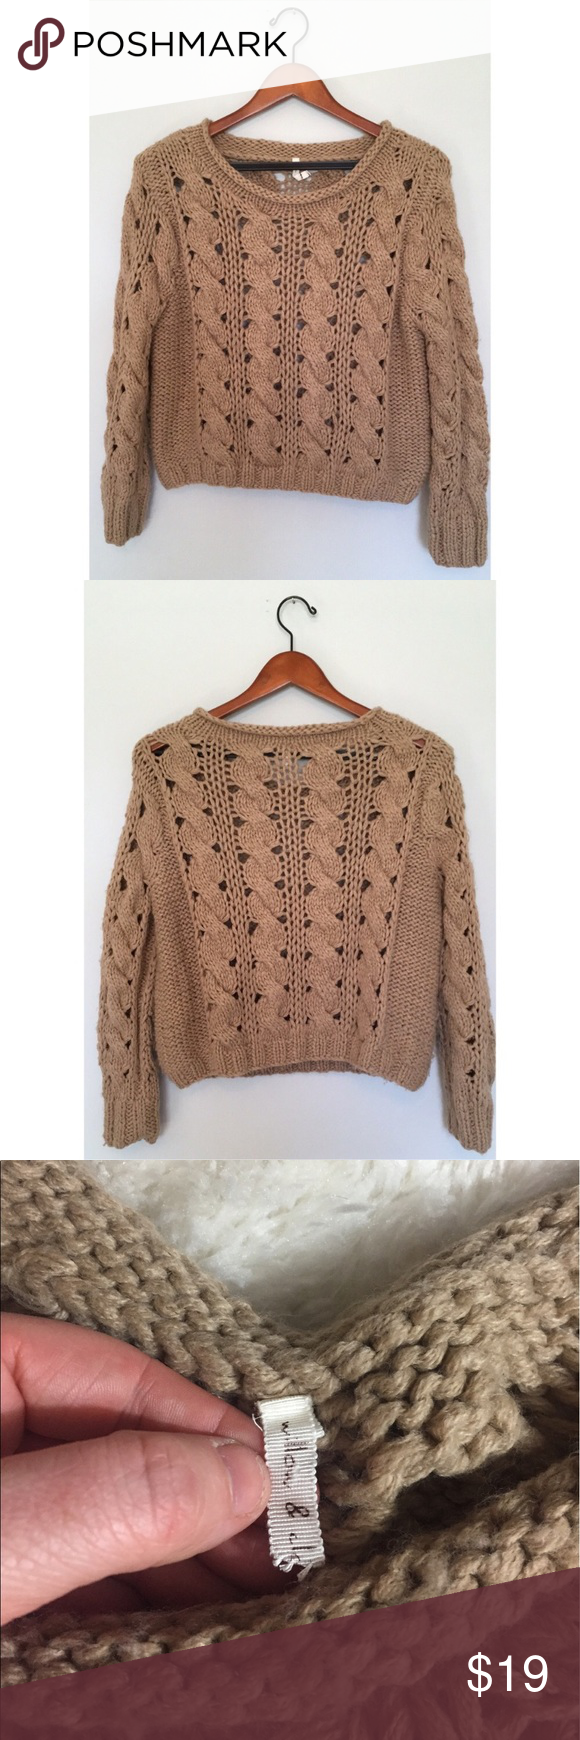 Anthropologie chunky knit sweater | Anthropologie